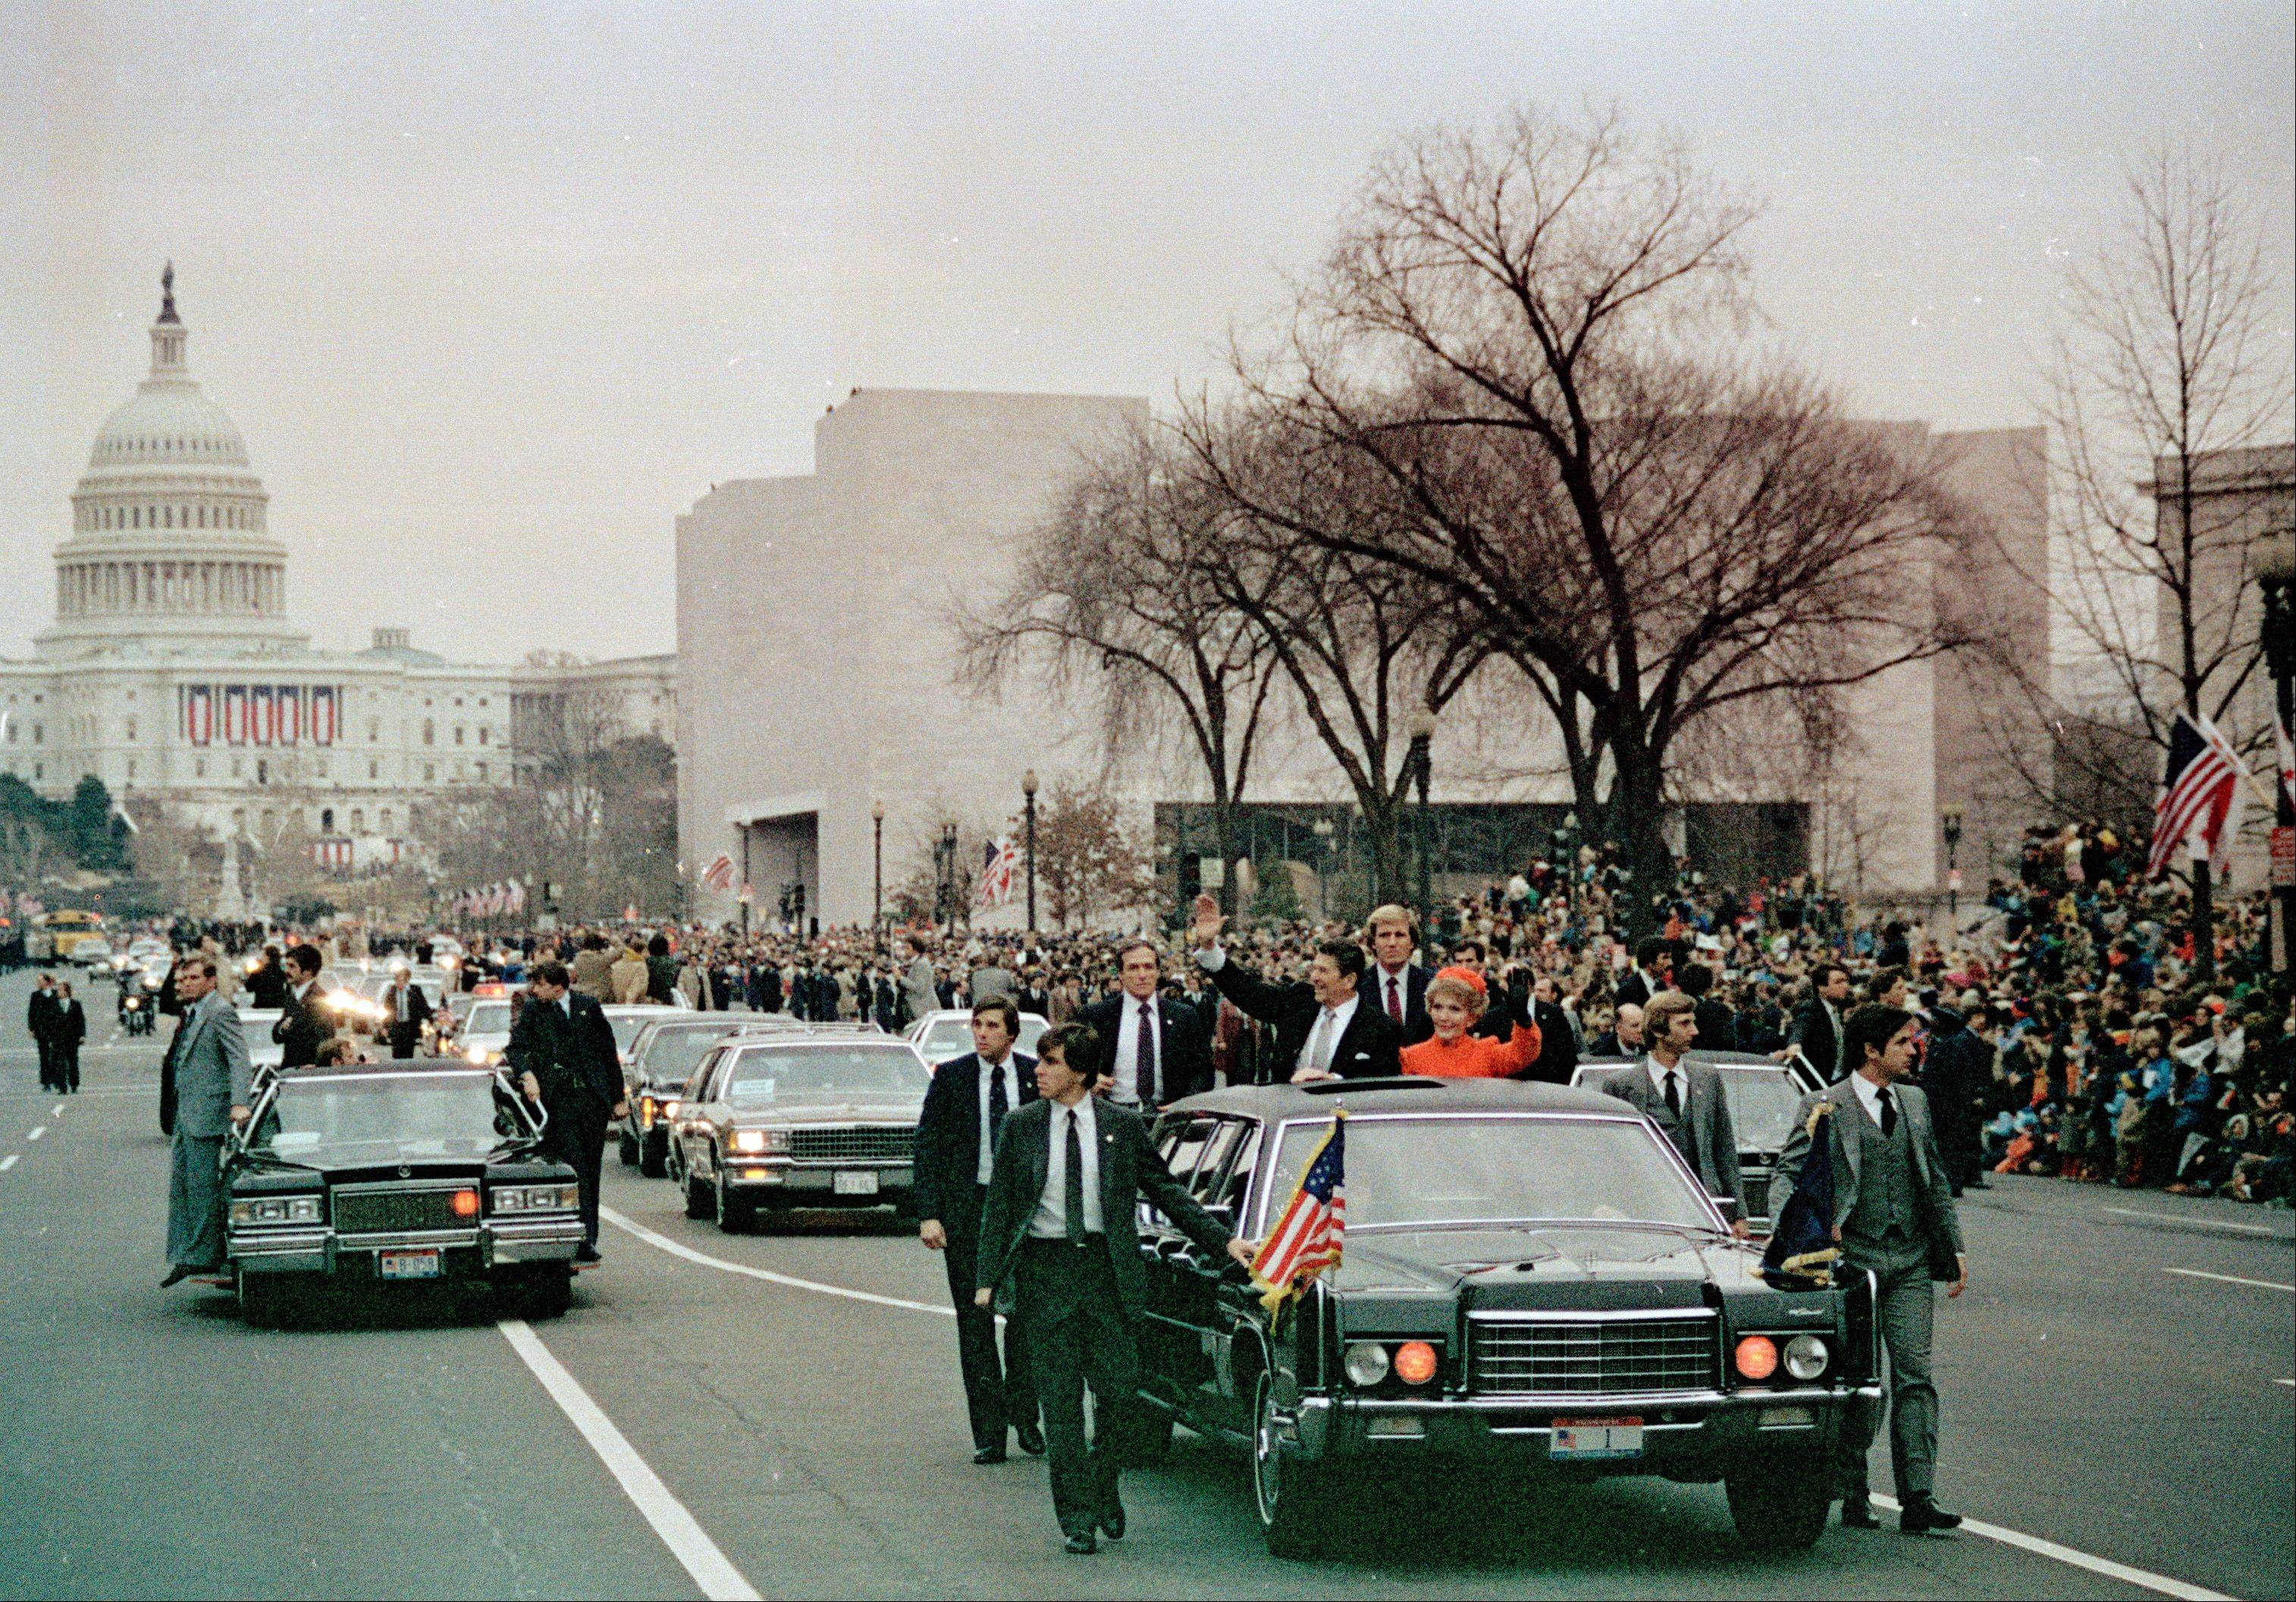 U.S. President Ronald Reagan, left, and first lady Nancy Reagan wave to the crowd from their limousine as they lead the motorcade down Washington's Pennsylvania Avenue on inauguration day, Jan. 20, 1981, following swearing-in ceremony.